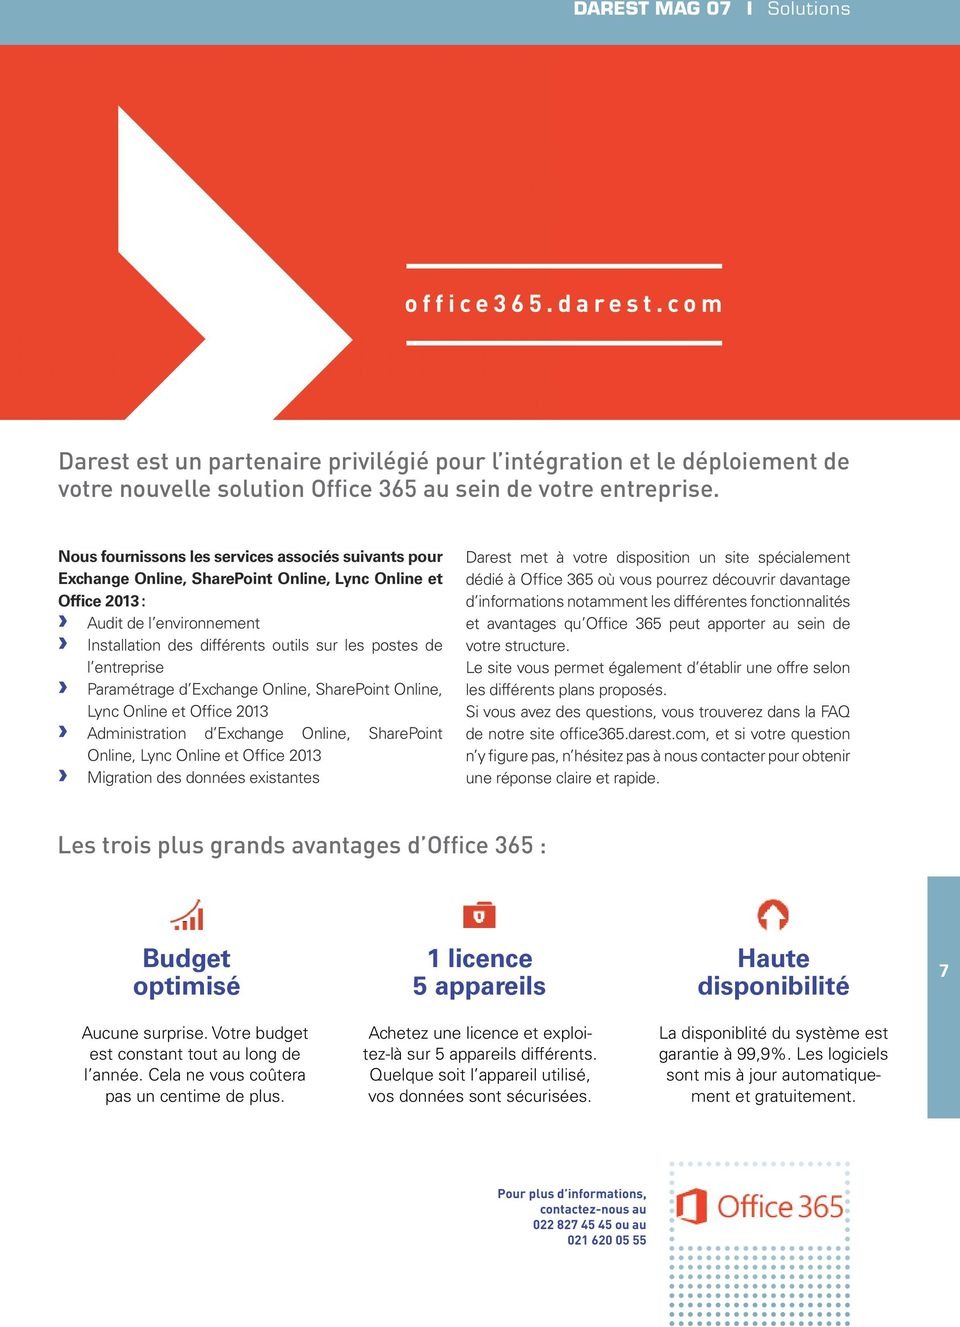 entreprise Paramétrage d Exchange Online, SharePoint Online, Lync Online et Office 2013 Administration d Exchange Online, SharePoint Online, Lync Online et Office 2013 Migration des données